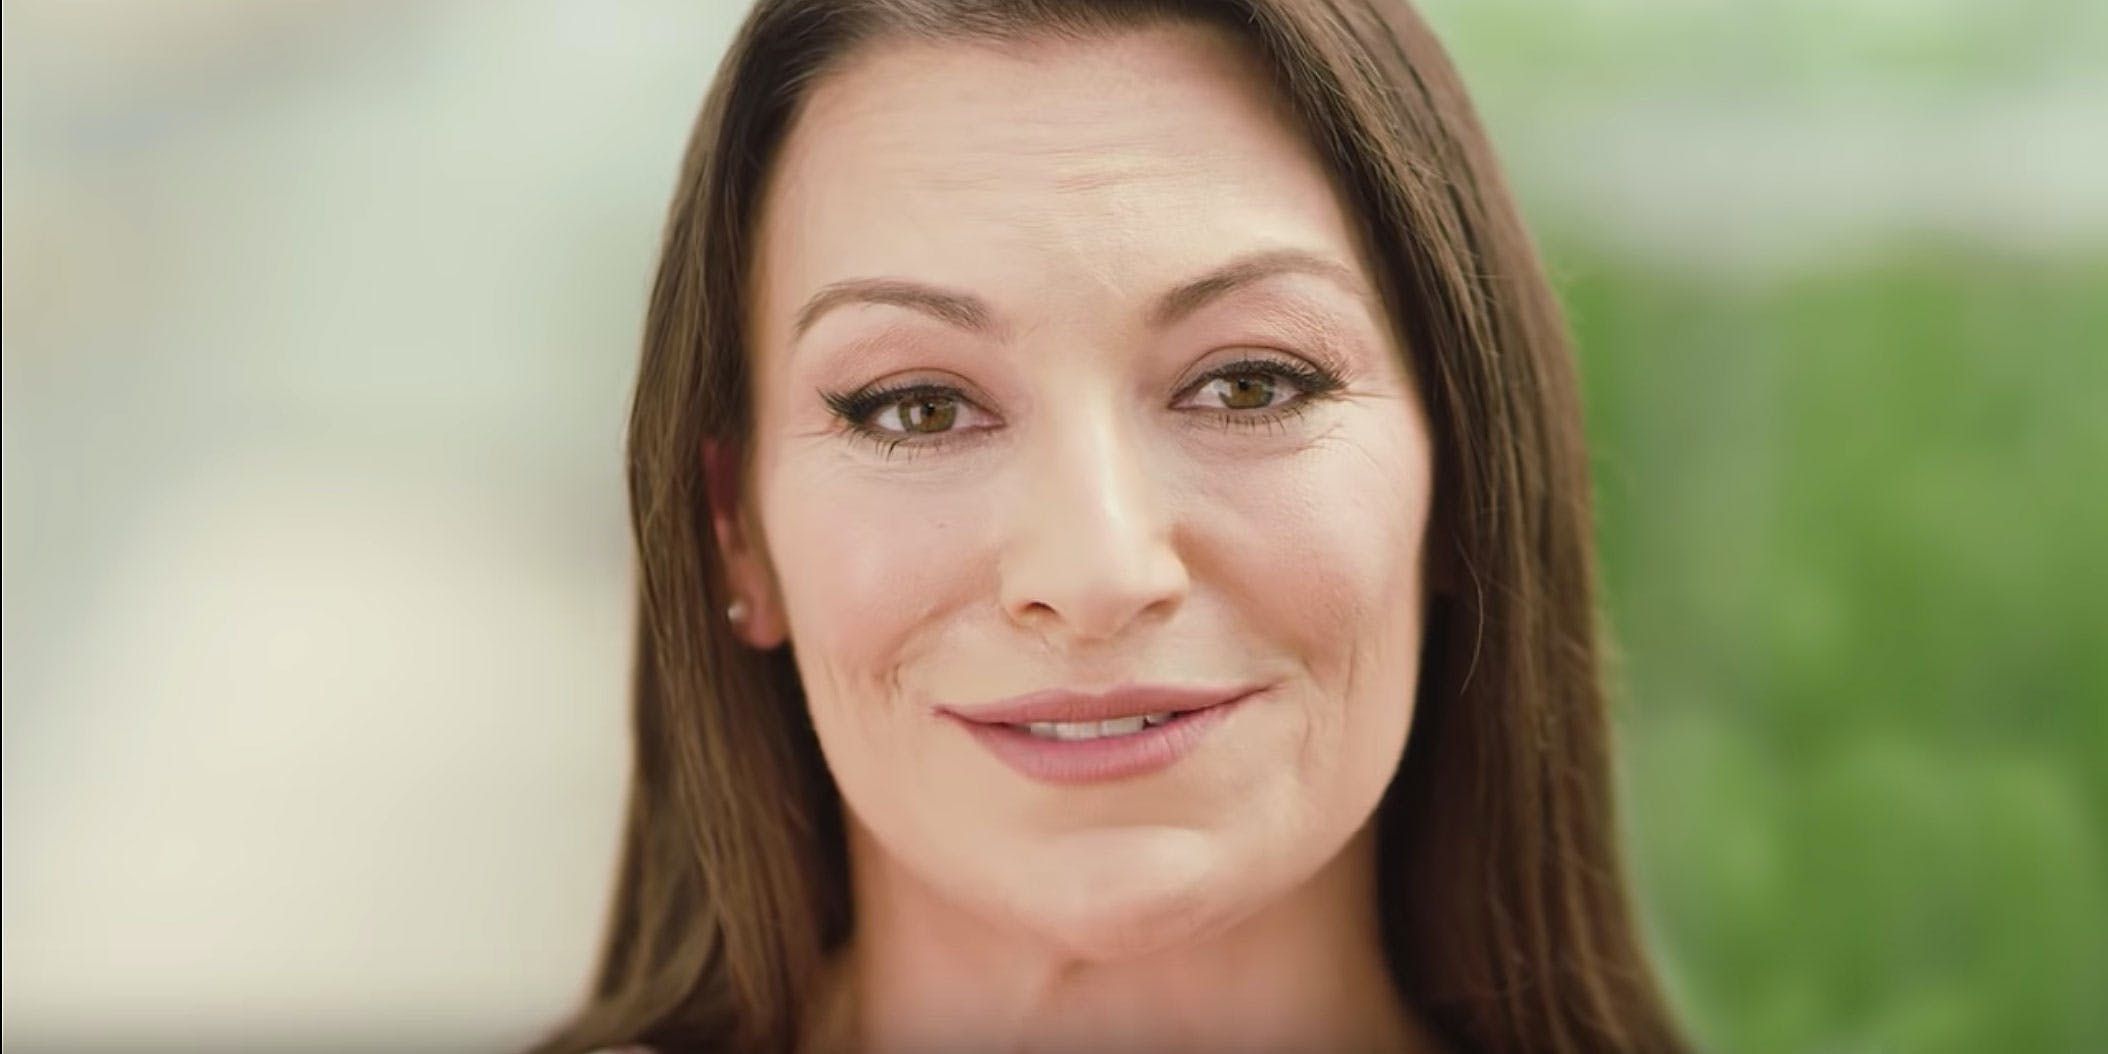 Nikki Fried, shown here, lost her bank account over cannabis campaign contributions